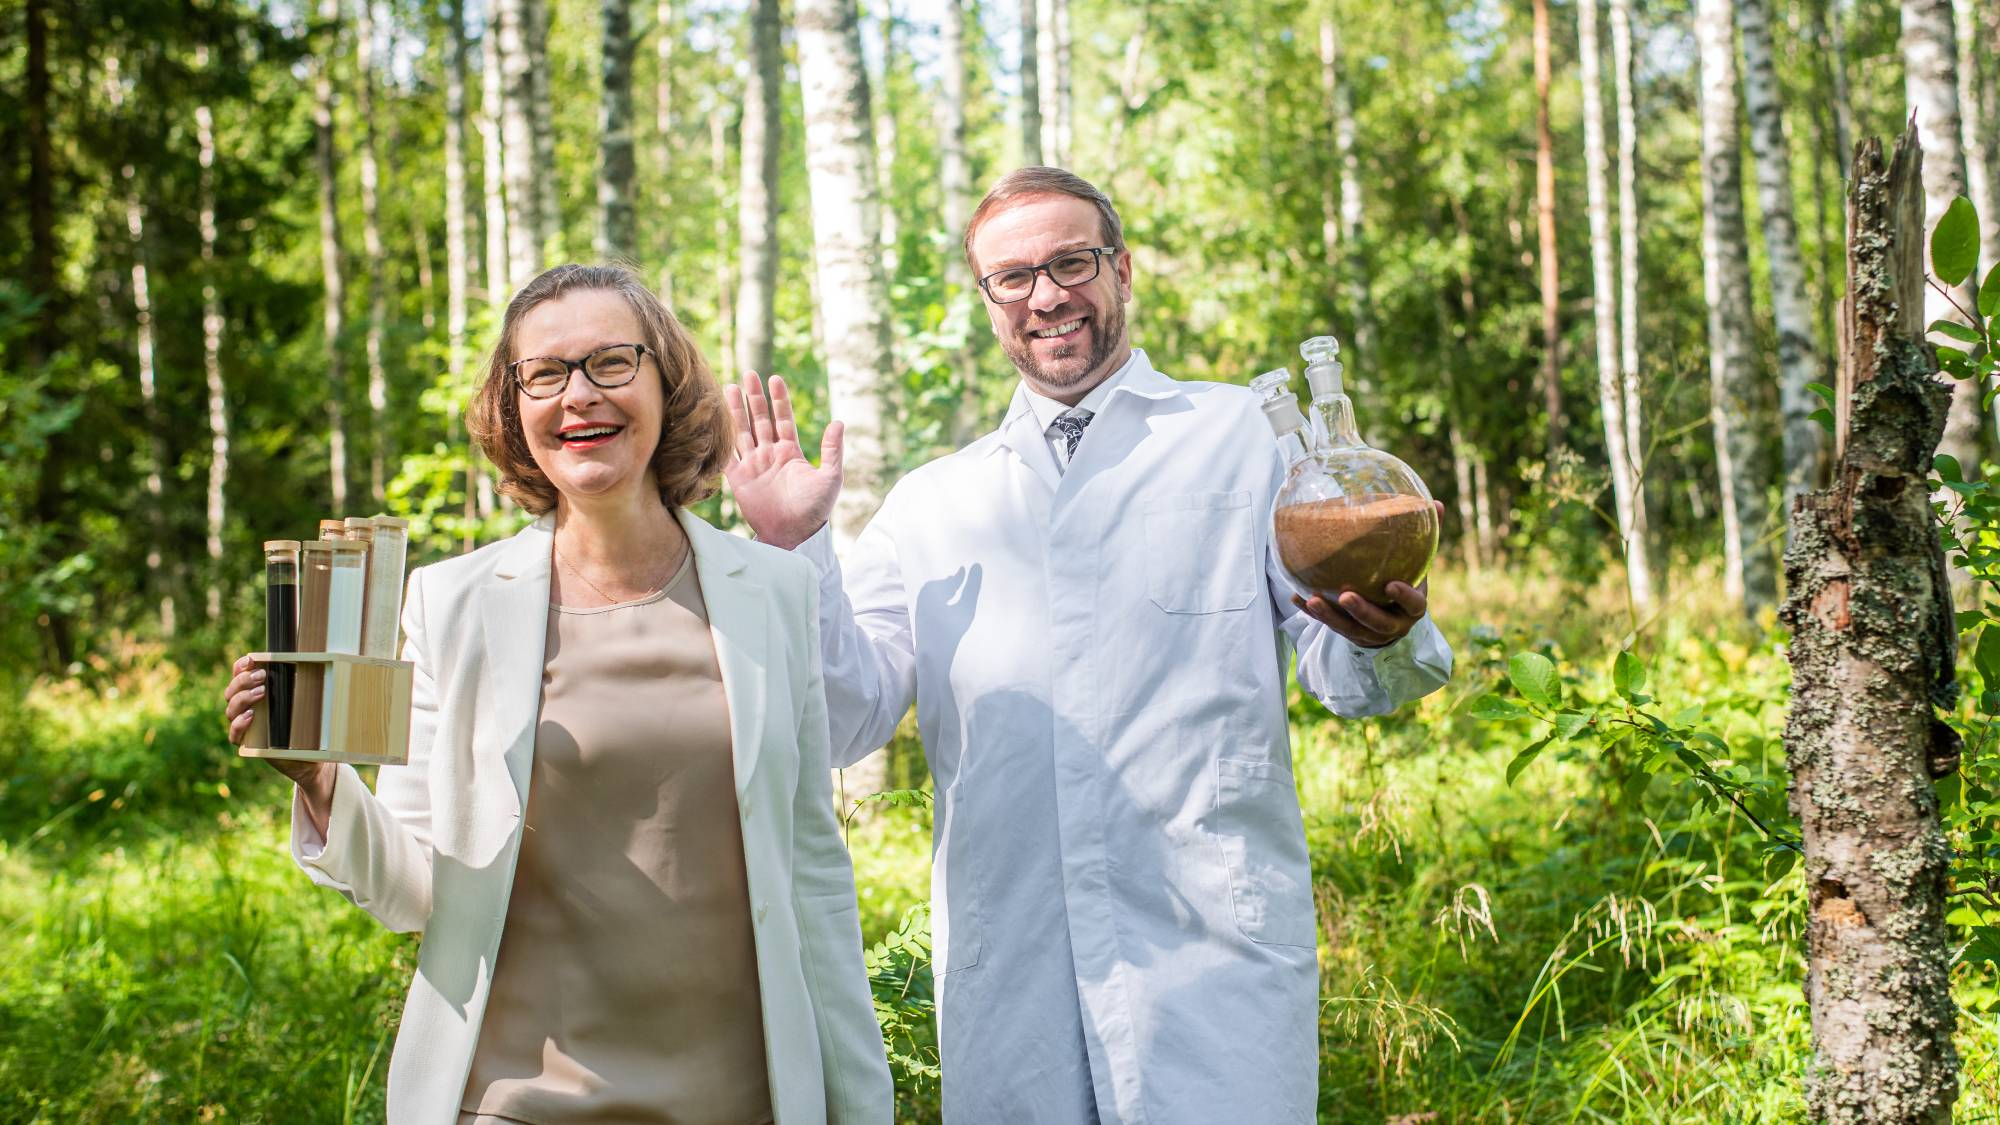 A man and woman standing in a forest in laboratory attire with laboratory equipment in hand.